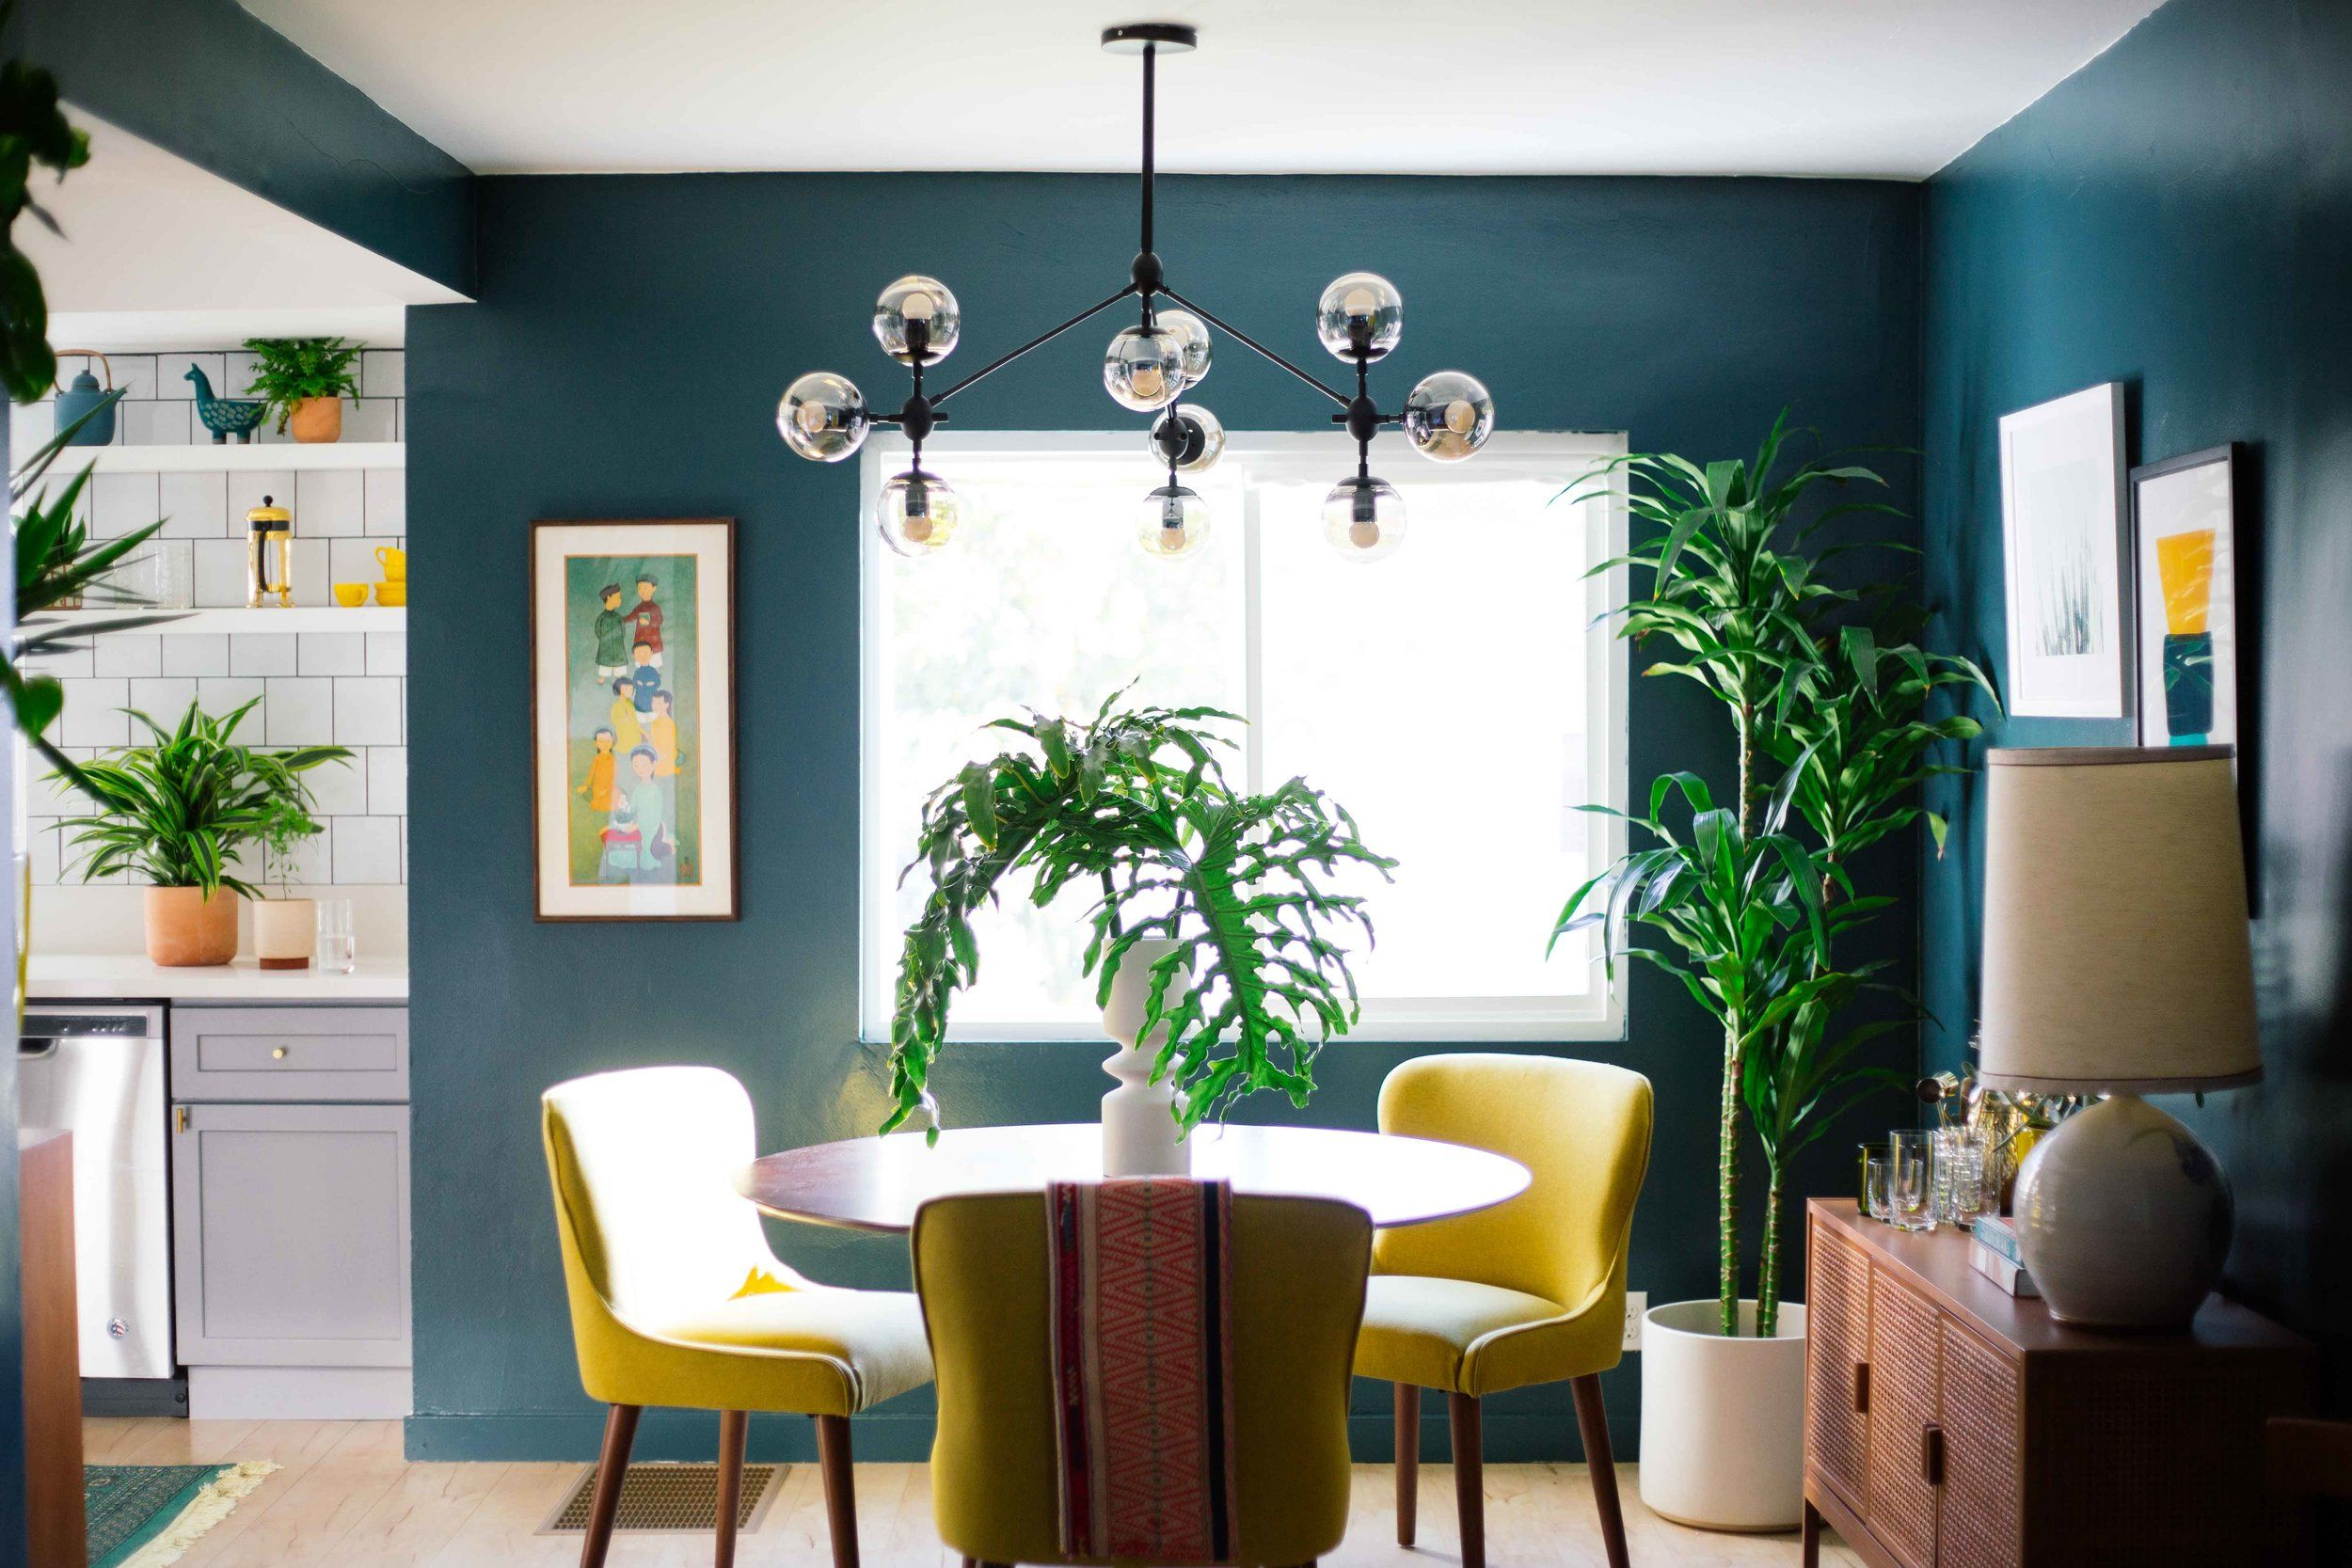 15 best colors for small rooms best paint tips for small spaces rh housebeautiful com Best Colors for Master Bedroom best color scheme for small bedroom